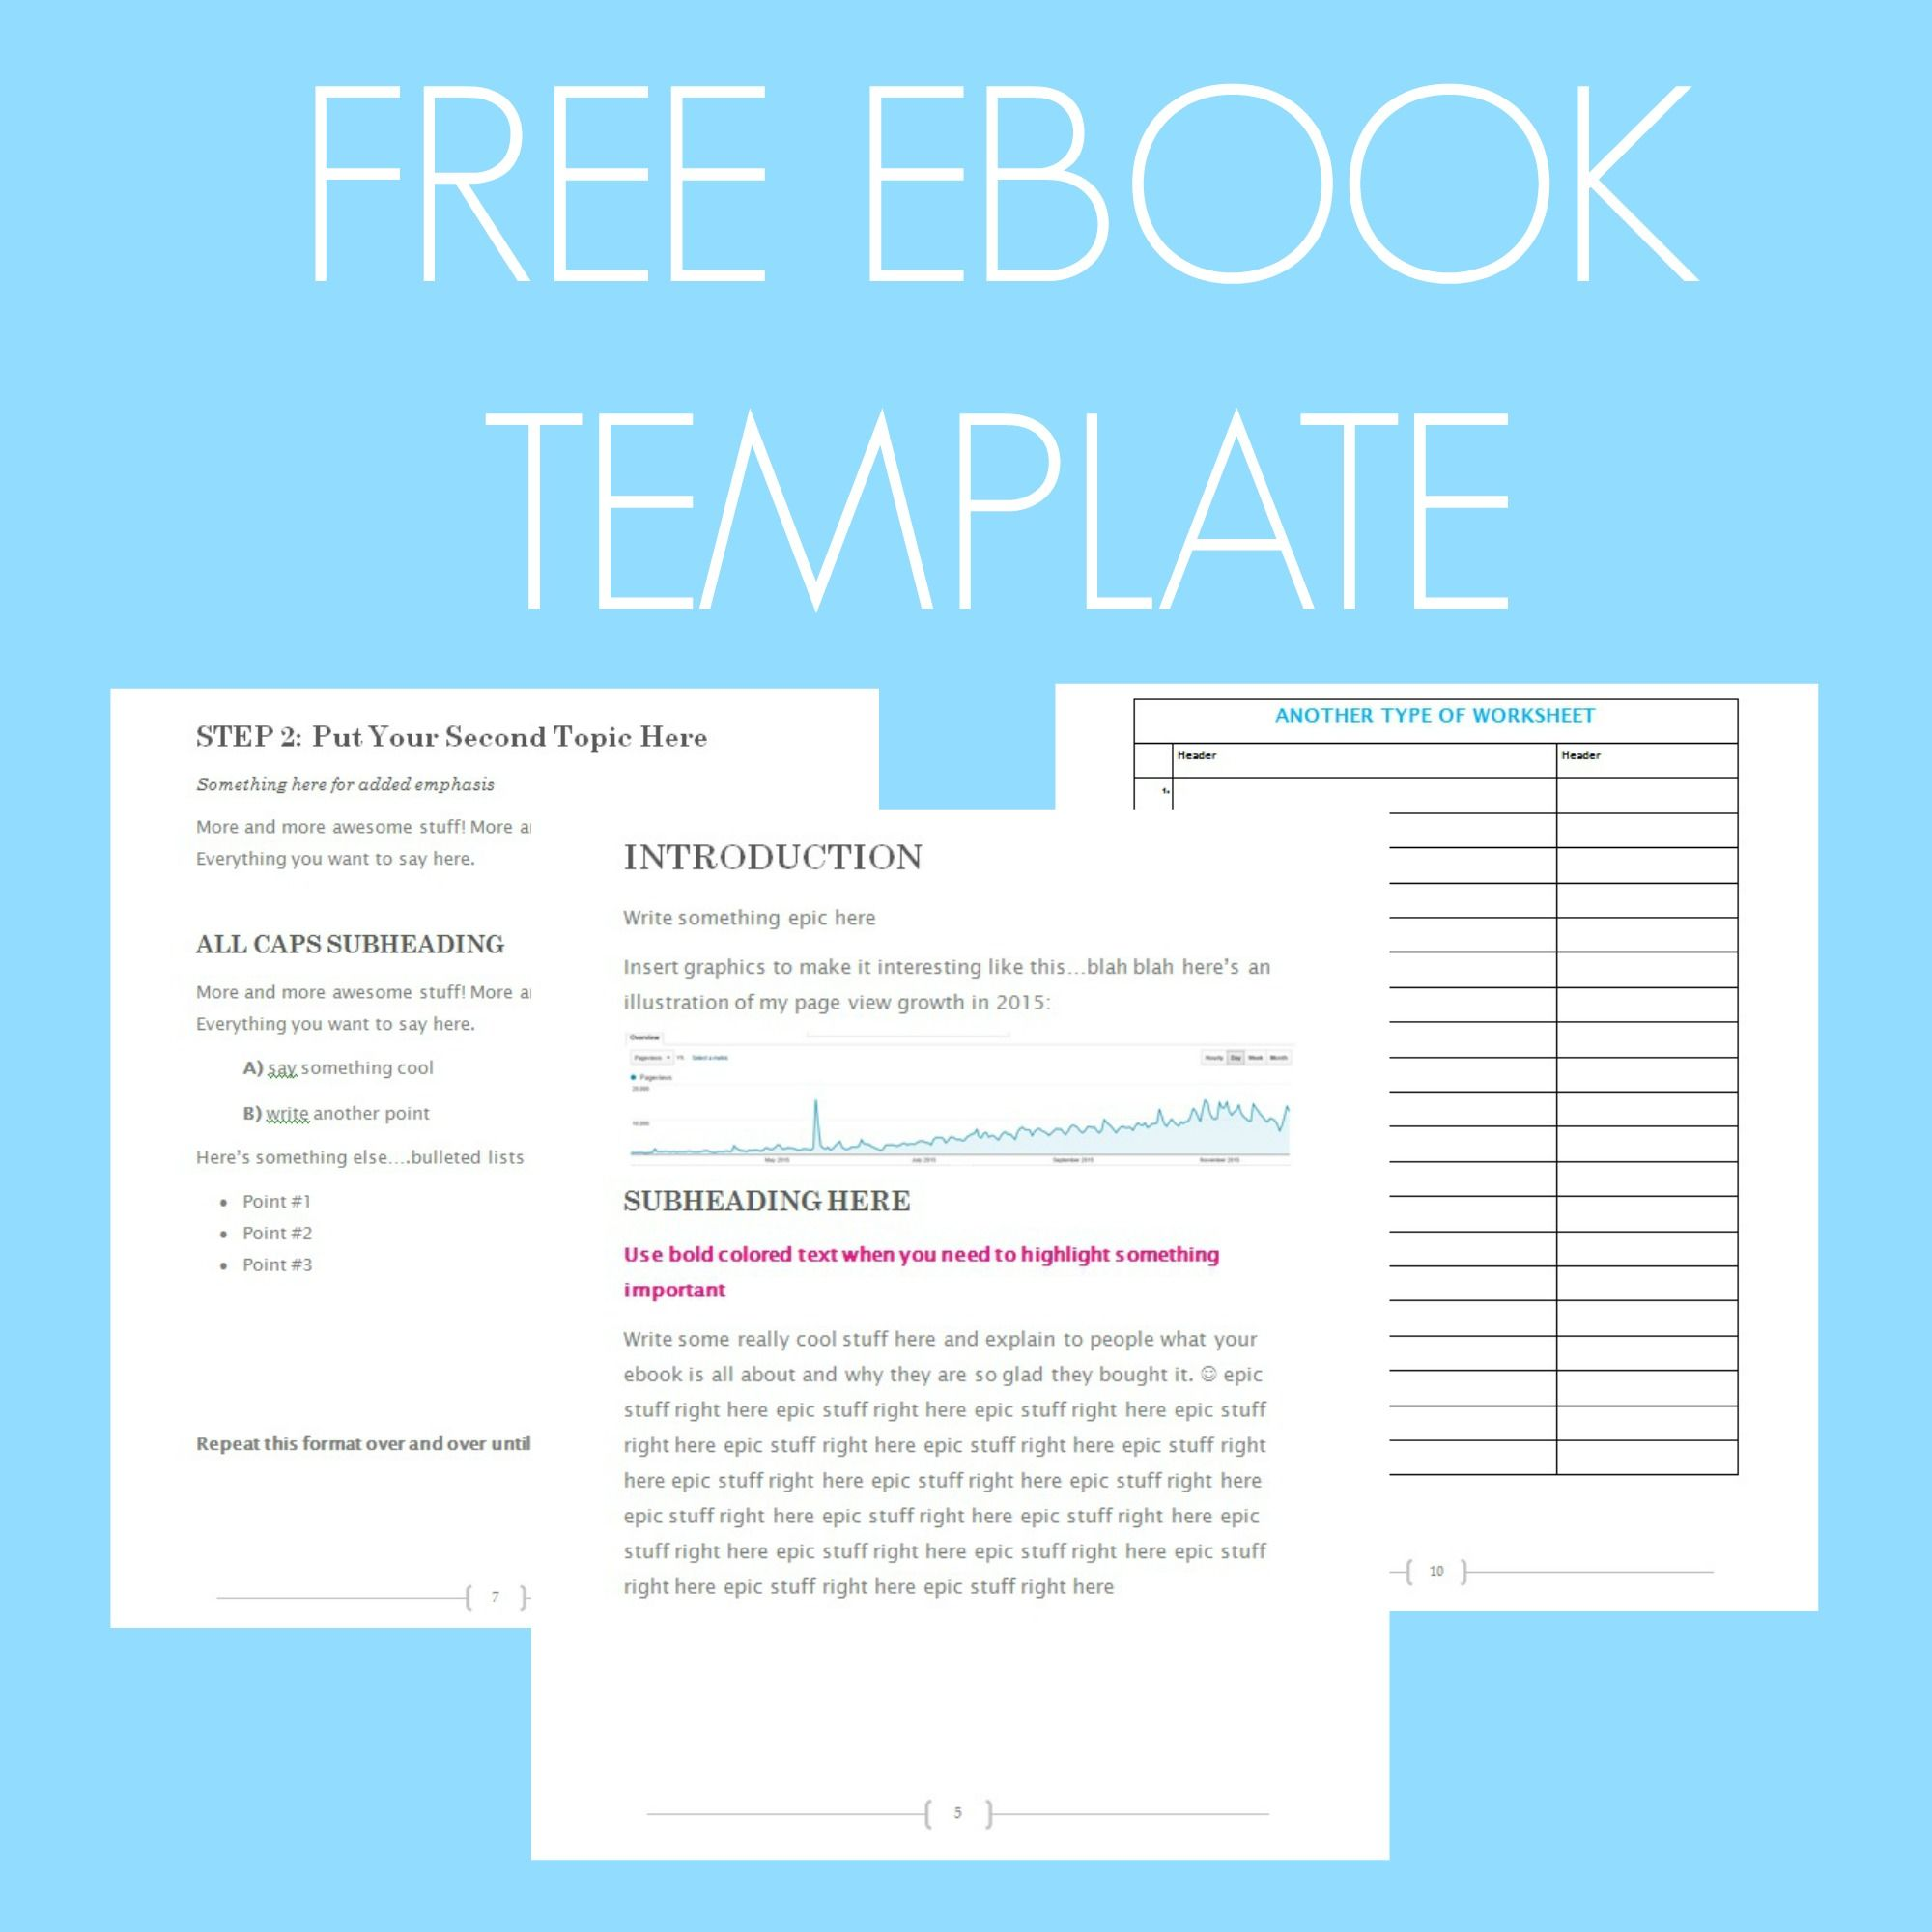 Free ebook template preformatted word document microsoft word free ebook template preformatted word document pronofoot35fo Choice Image